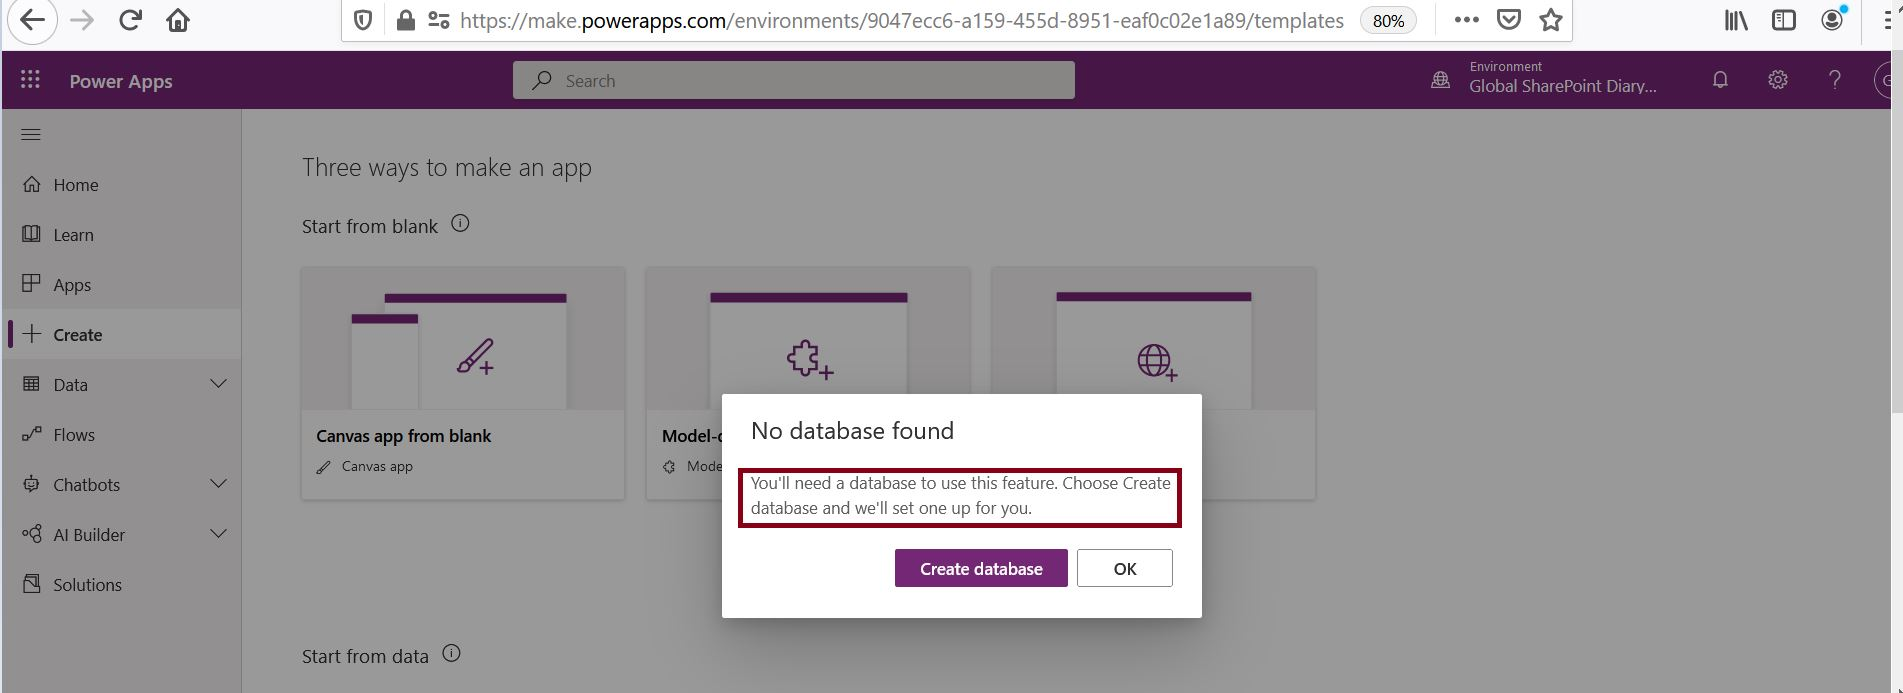 No database found - create database in PowerApps